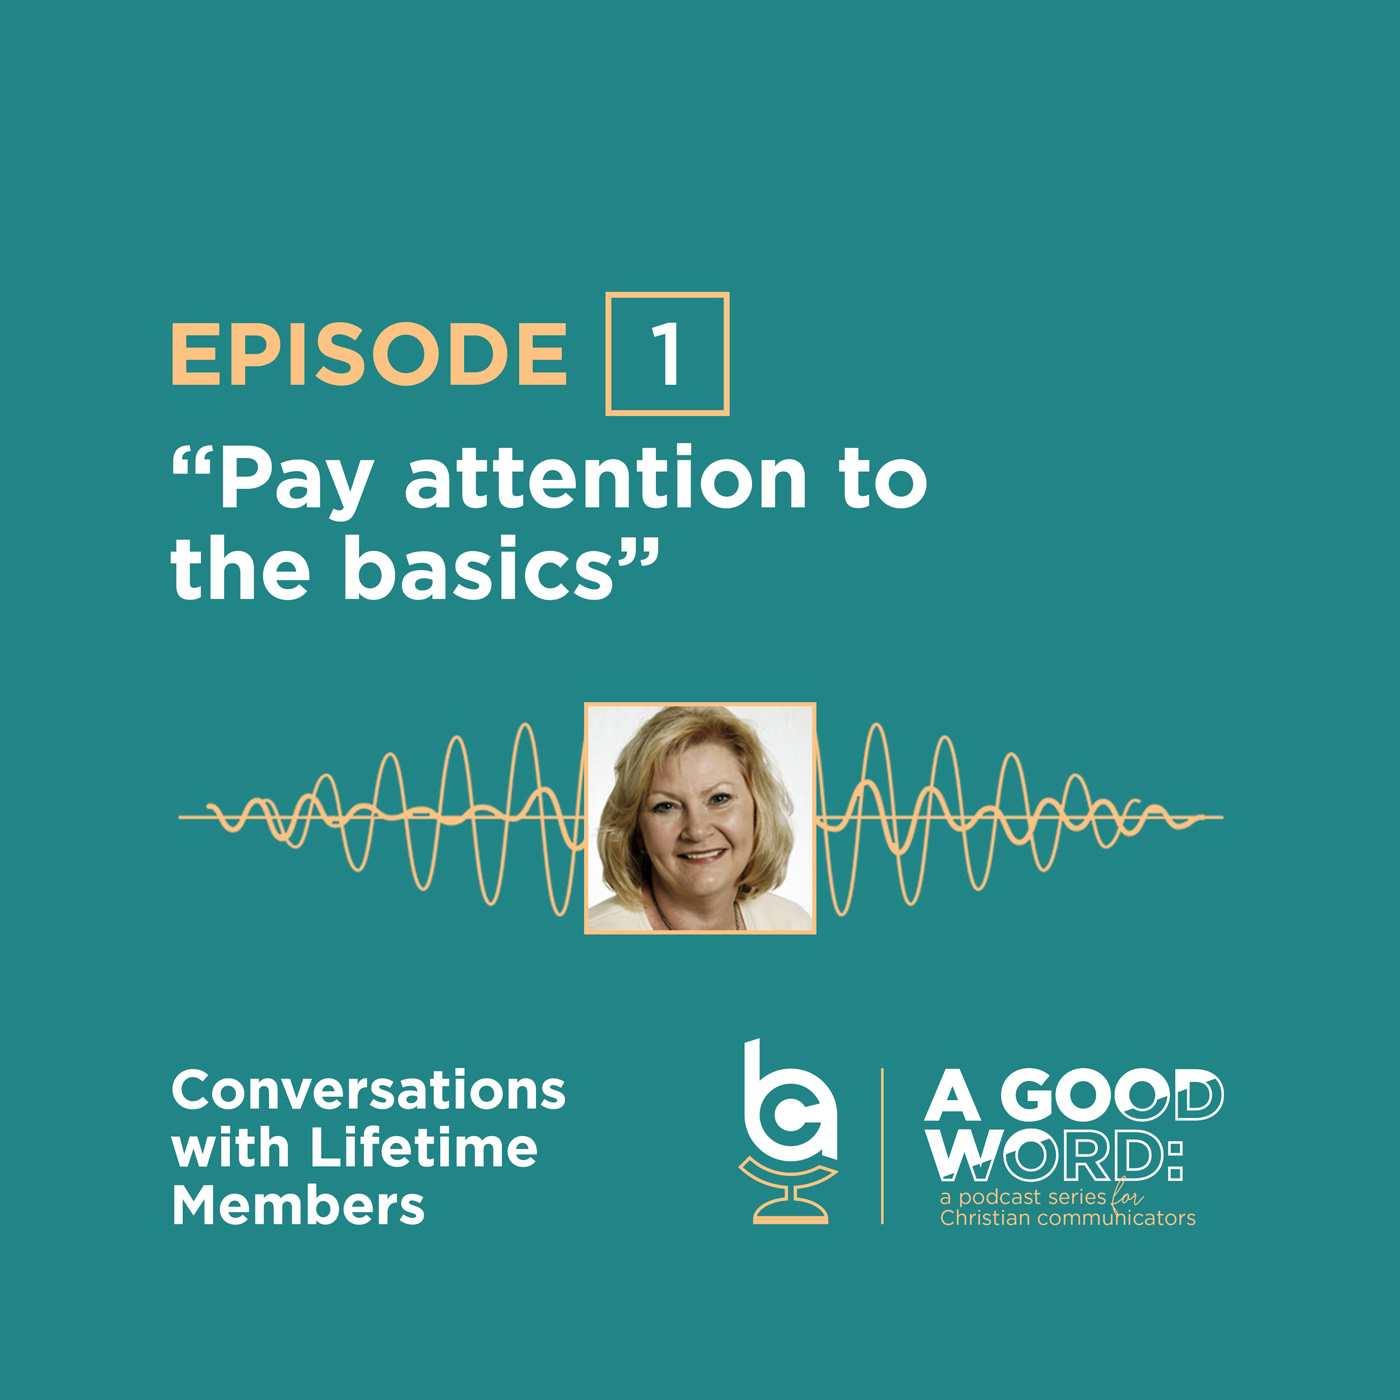 Episode 1: Barbara Denman: Pay attention to the basics